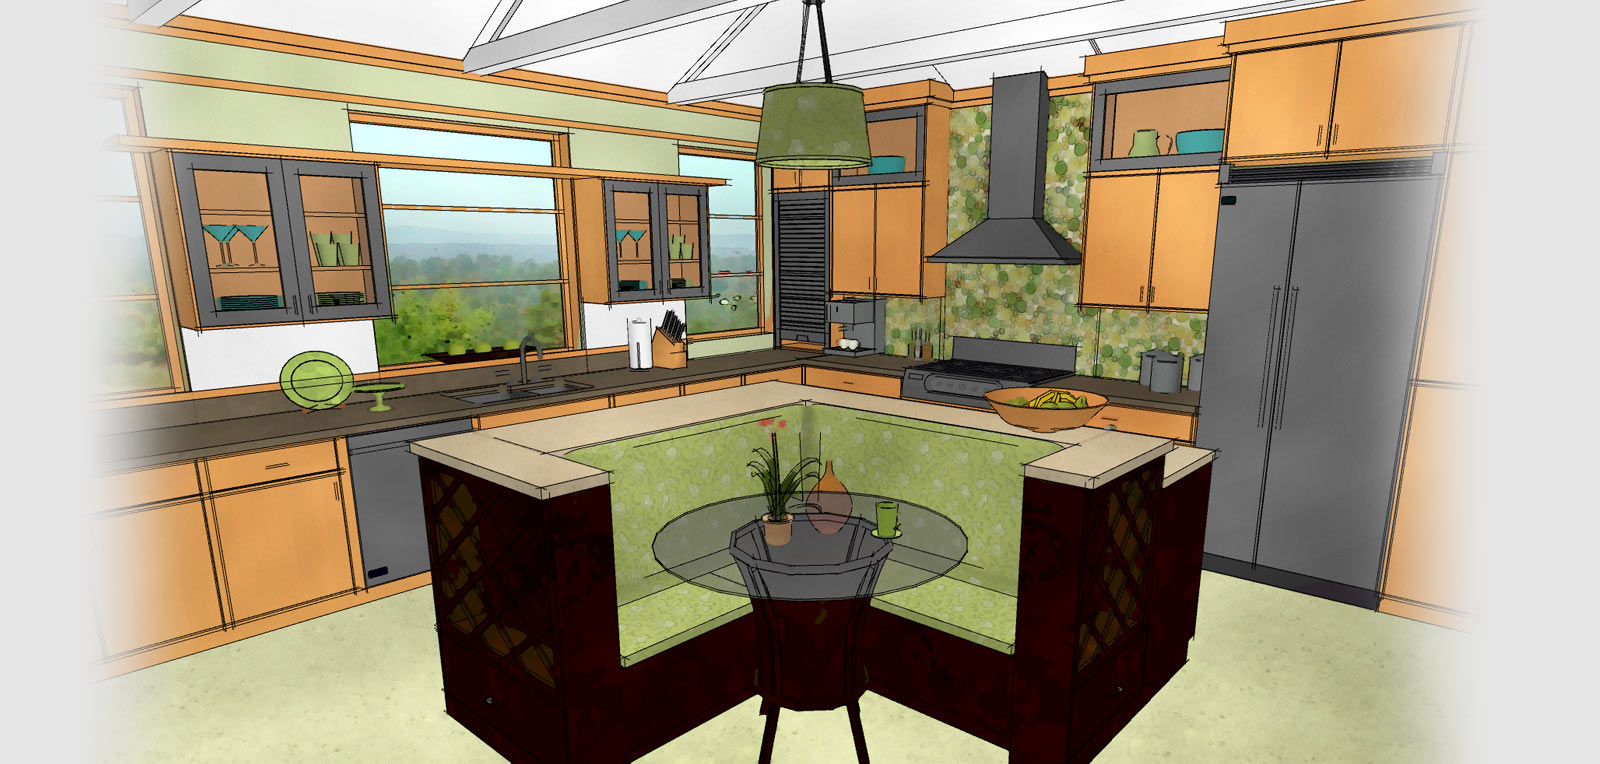 kitchen bath kitchen and bath design Technical drawing of a kitchen generated by Home Designer